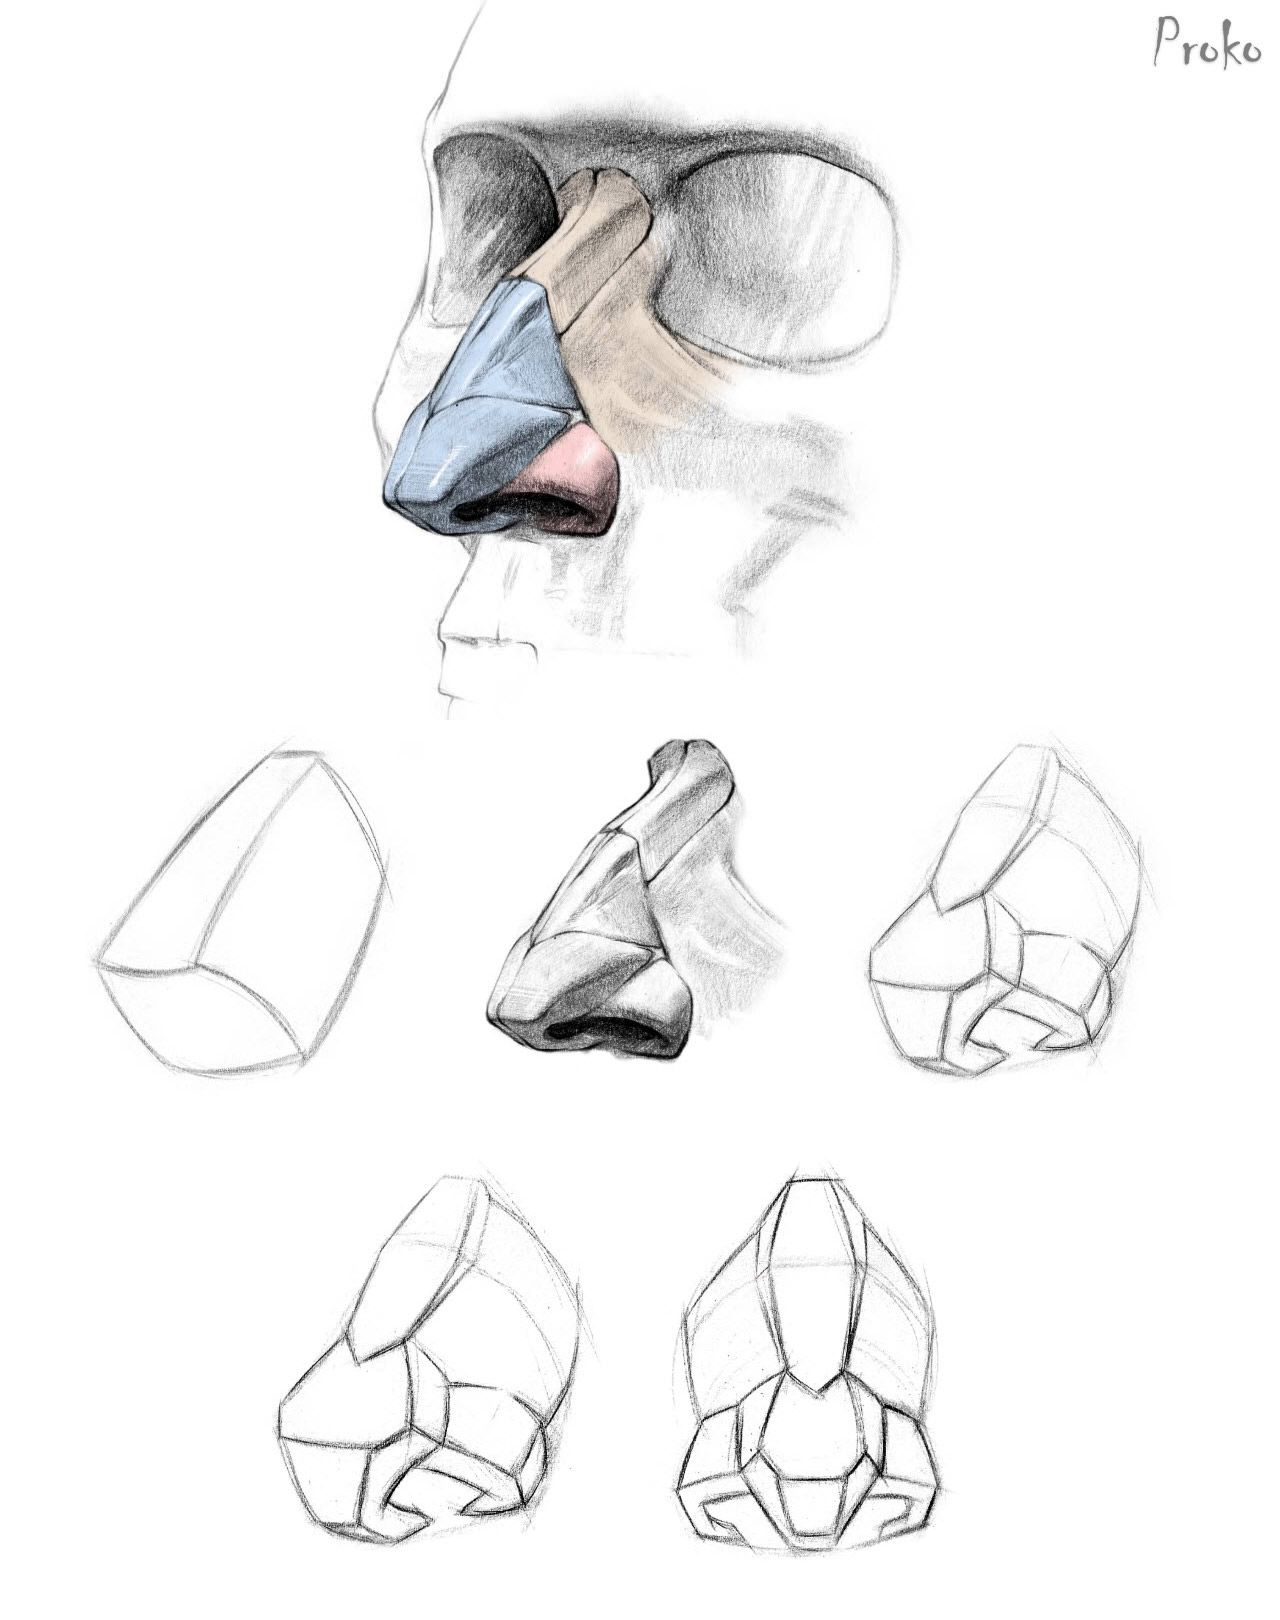 Proko >> How to Draw a Nose - Anatomy and Structure https://www ...